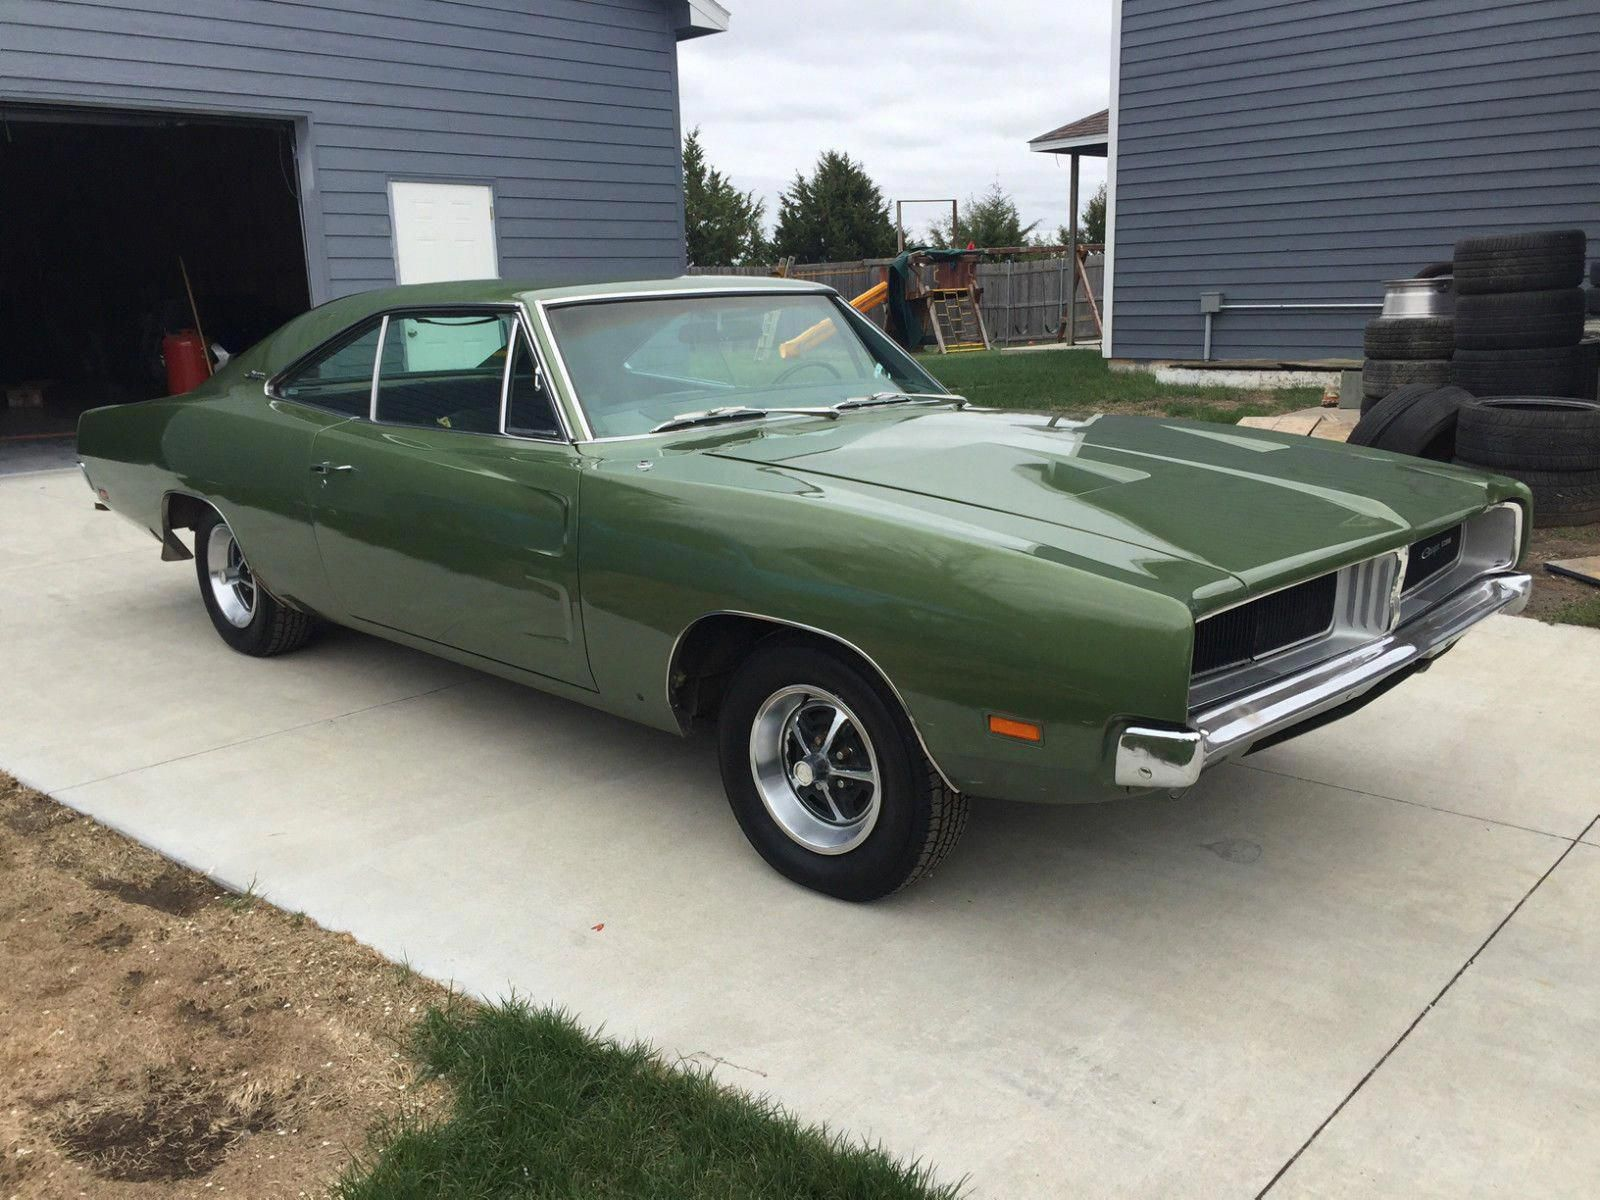 1969 Dodge Charger Base Dodgechargerclassiccars Classic Cars